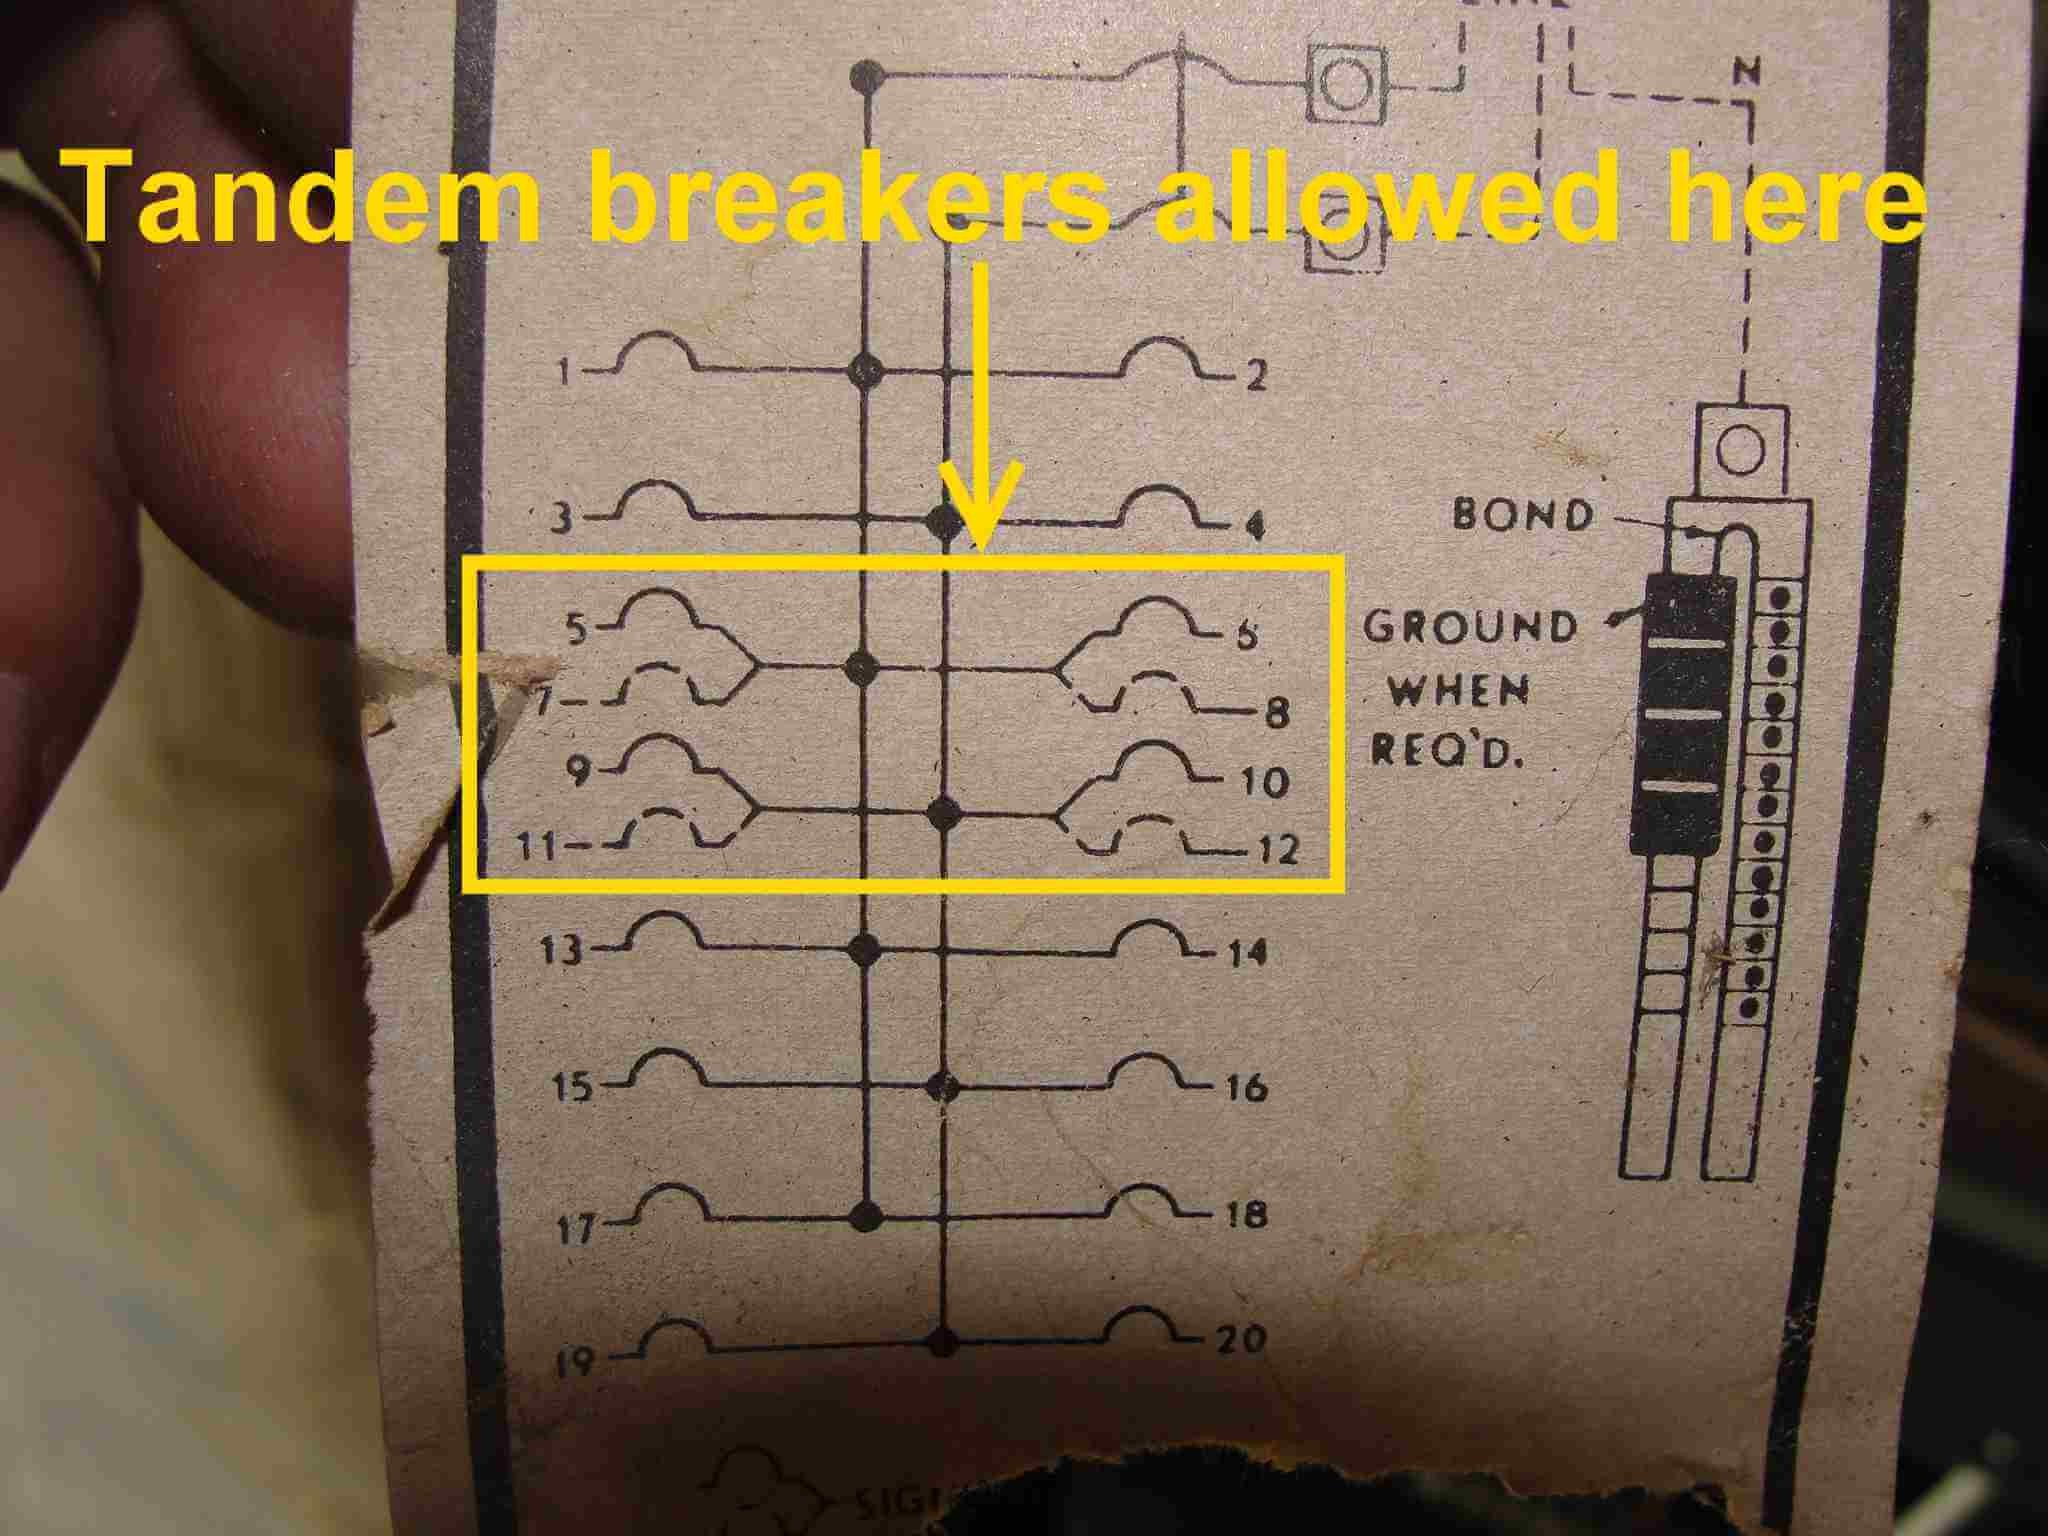 Grounding Wiring On Homelite 100 Amps 12 Space 24 Circuit How to Know when Tandem Circuit Breakers Can Be Used Aka Of Grounding Wiring On Homelite 100 Amps 12 Space 24 Circuit